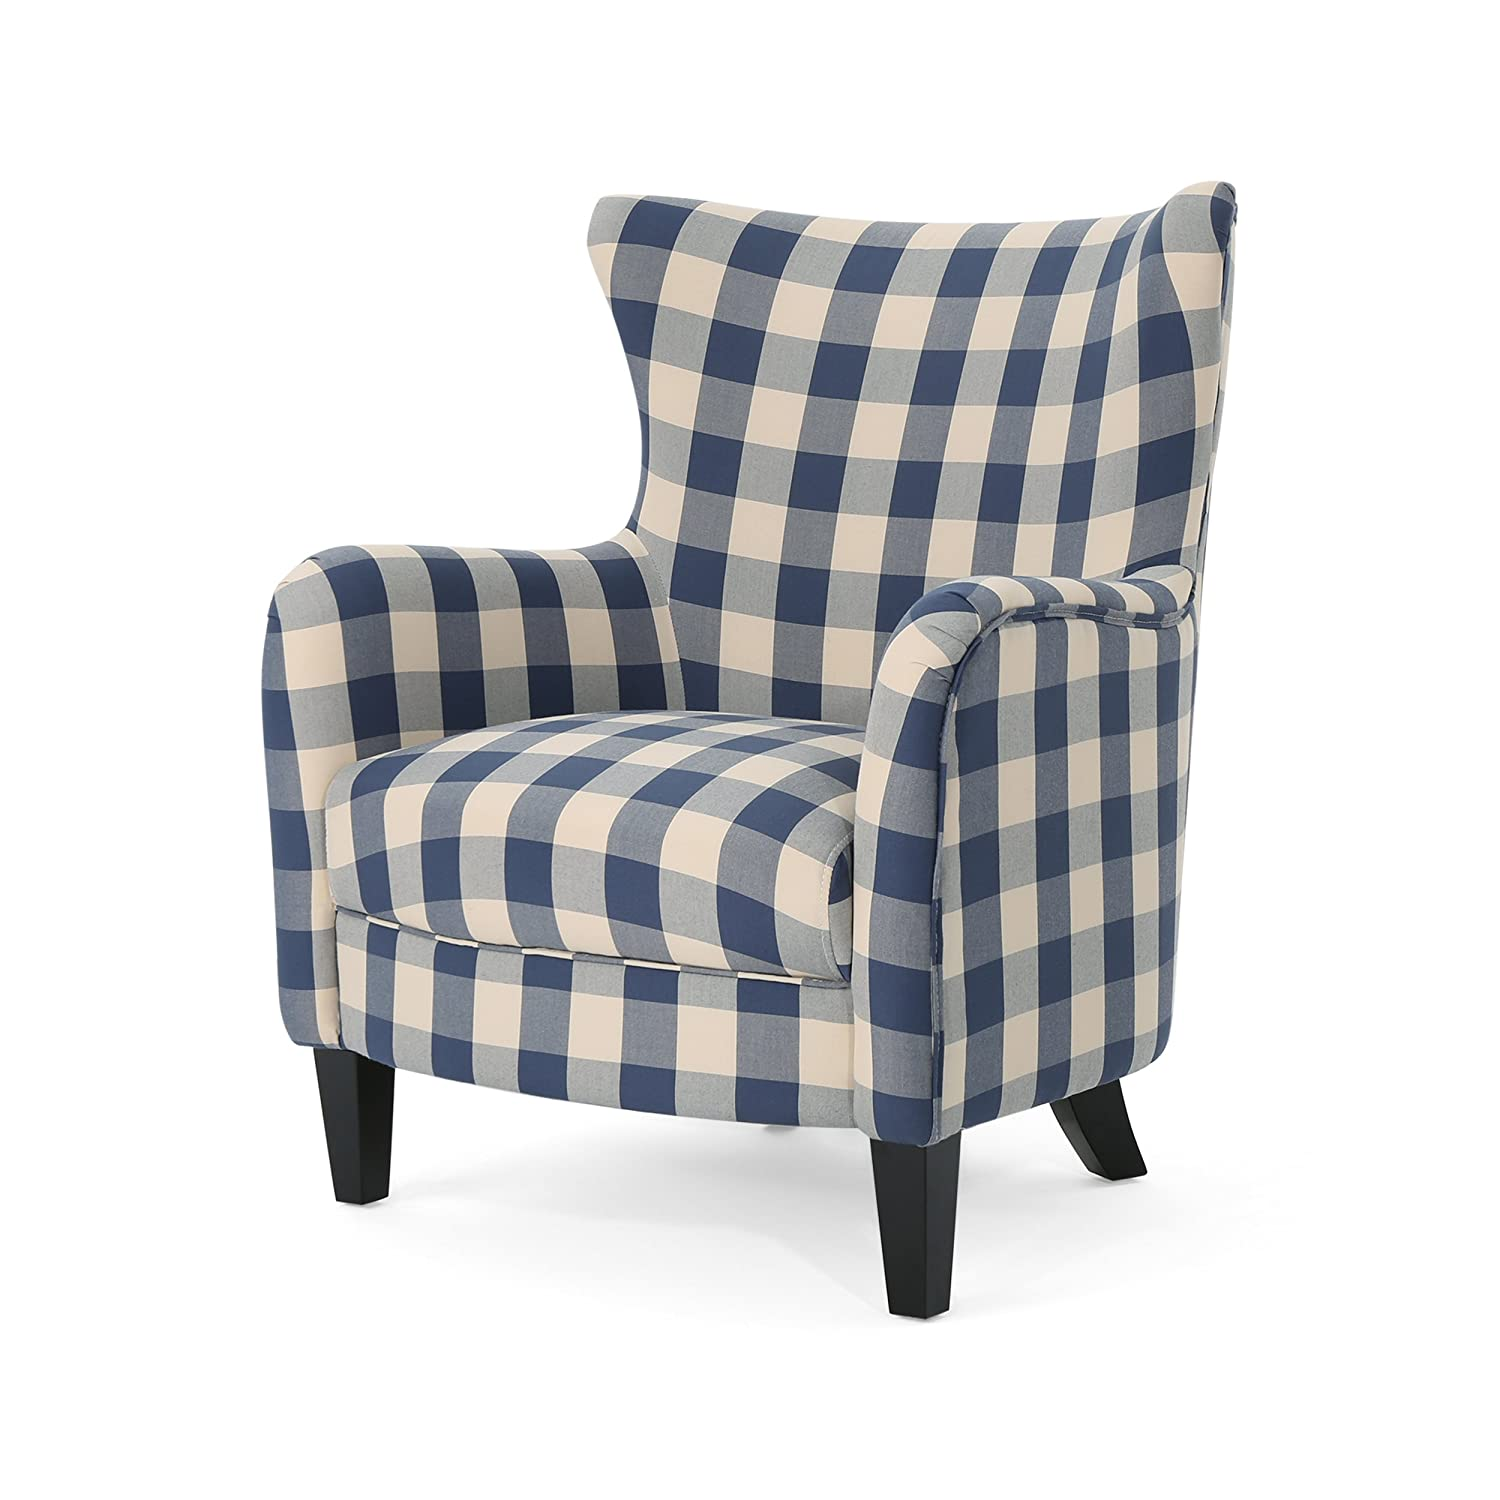 Christopher Knight Home 306114 Oliver Farmhouse Armchair, Checkerboard